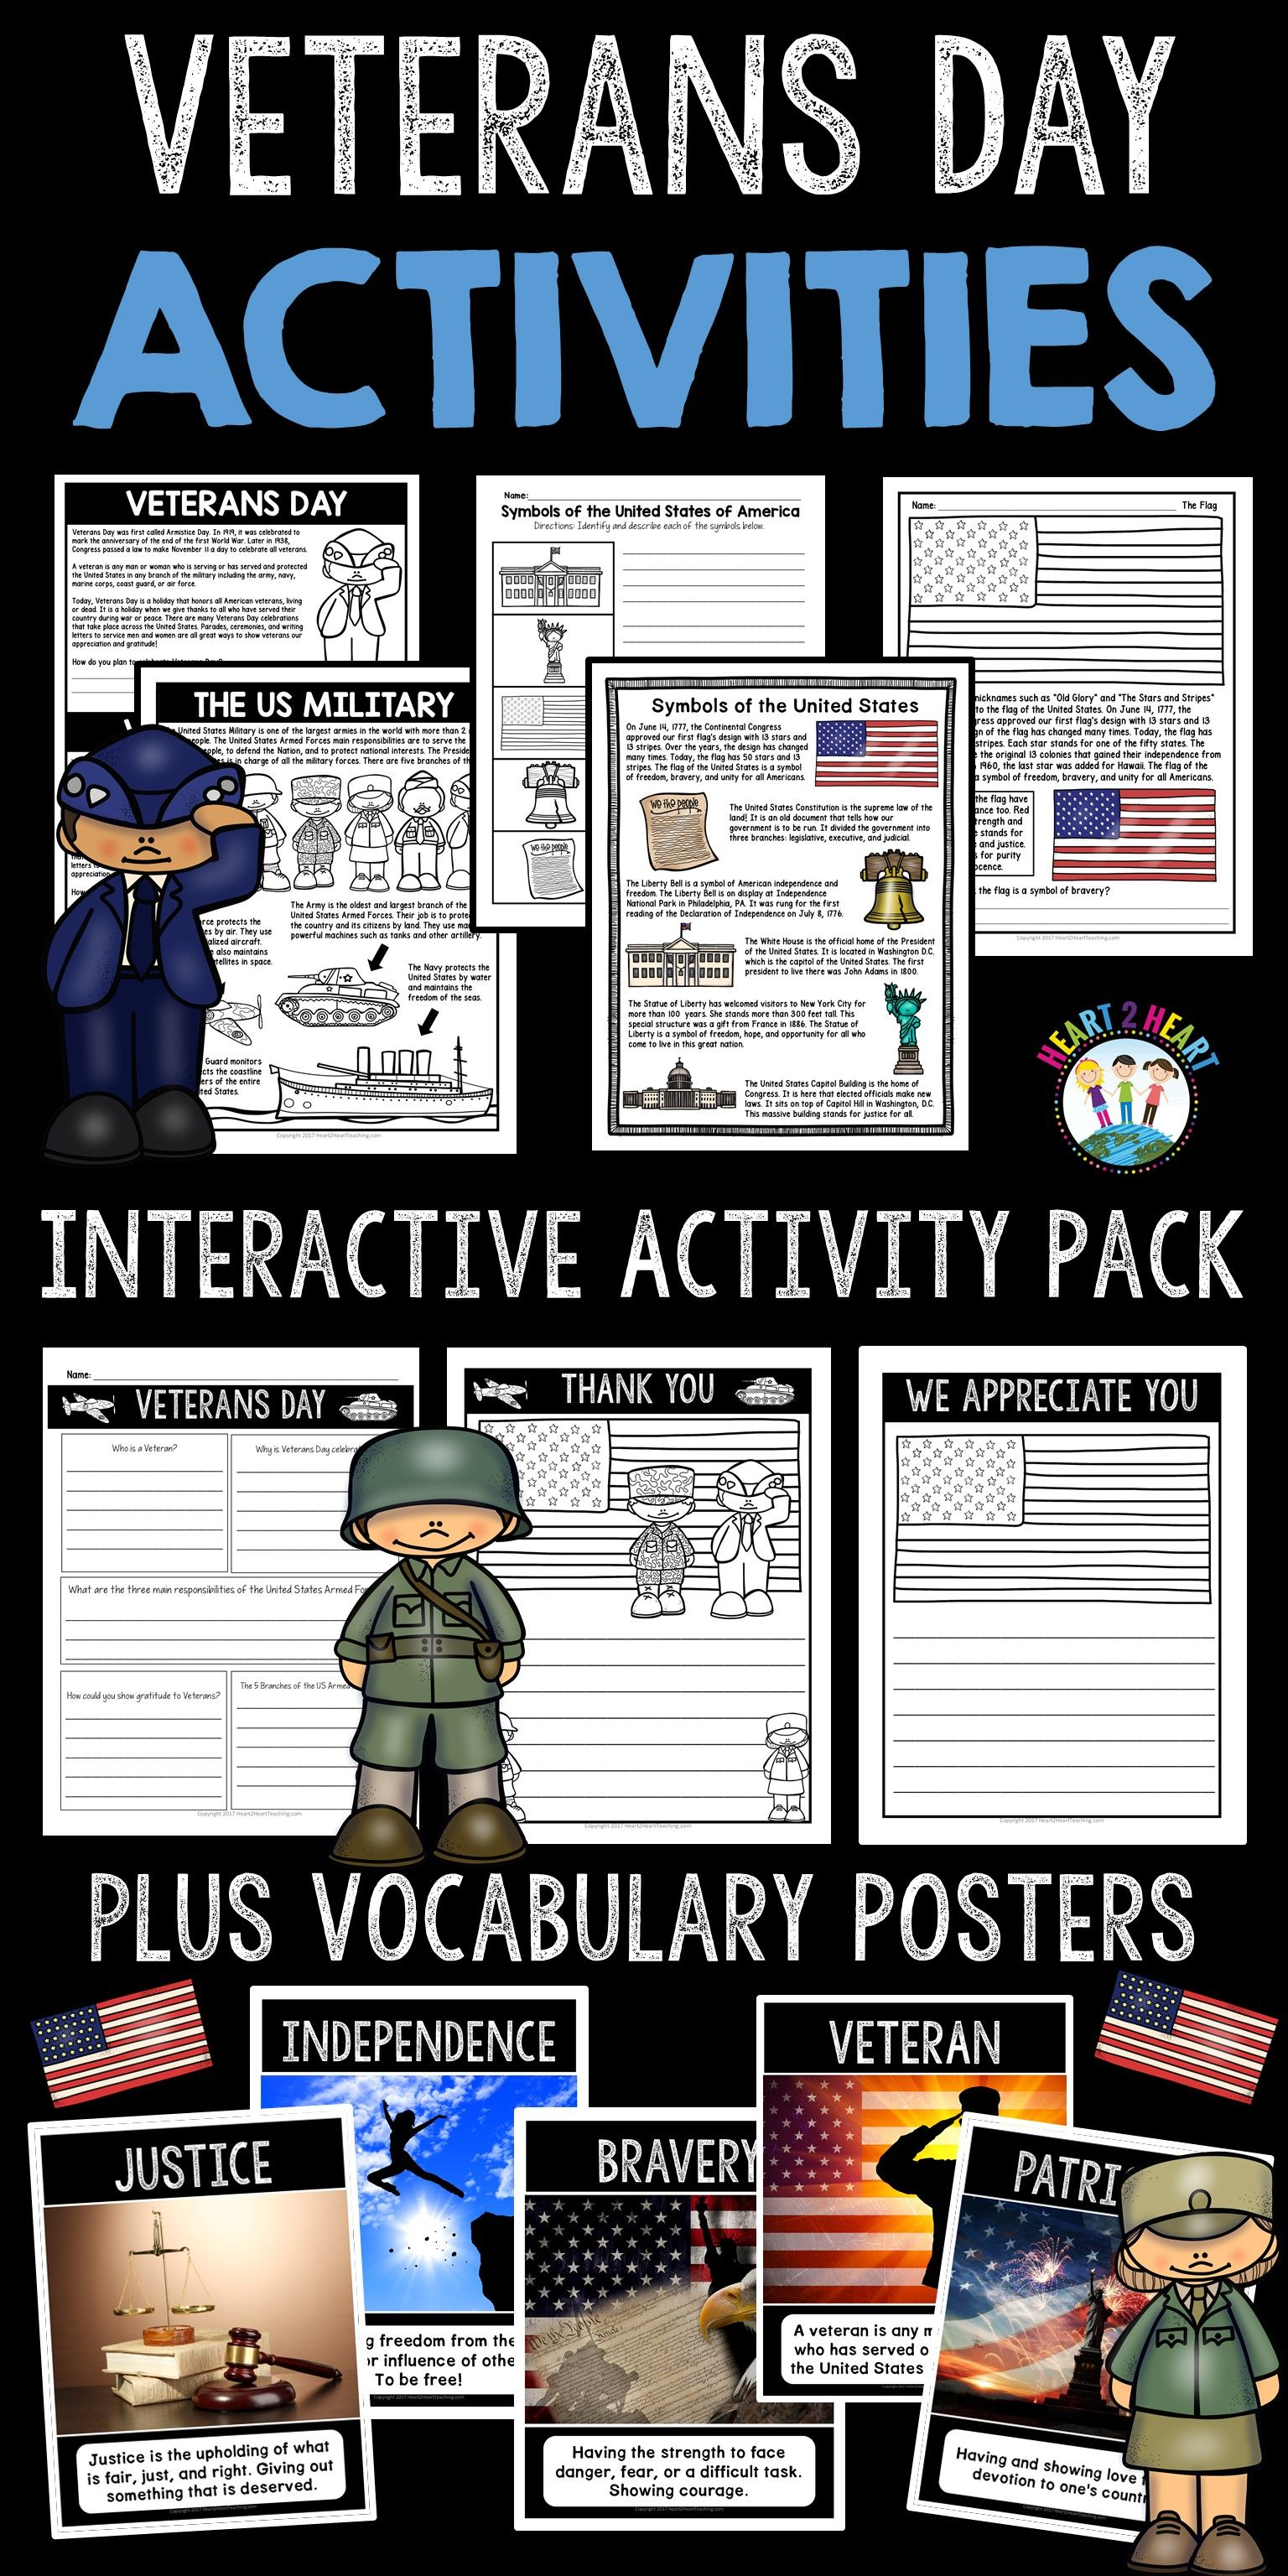 Veterans day activities with veterans day writing symbols happy veterans day celebrate this important holiday in the classroom with articles and activities all buycottarizona